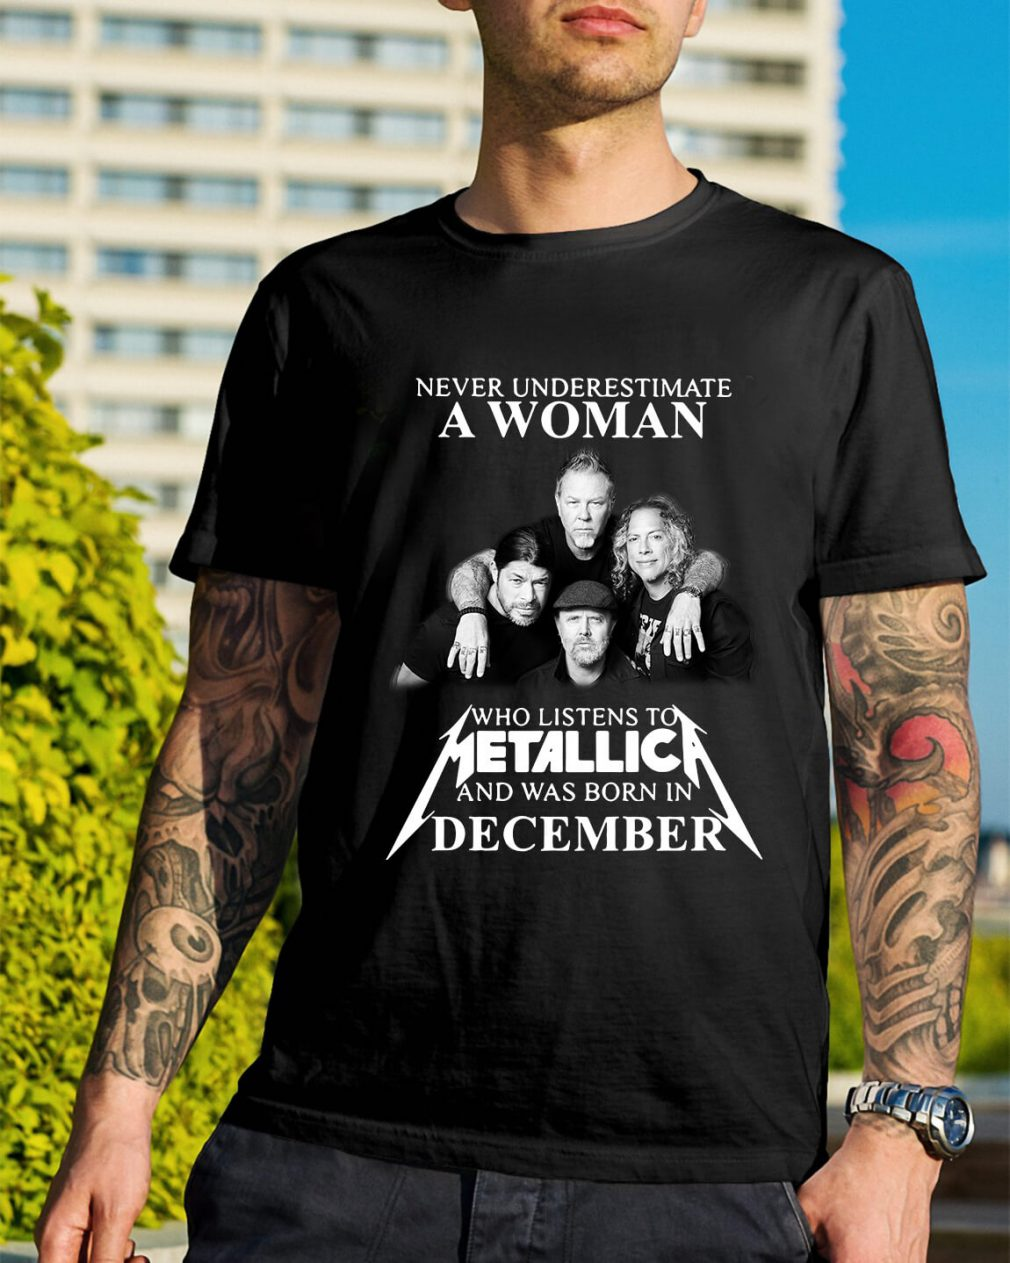 A woman who listens to Metallica and was born in December shirt